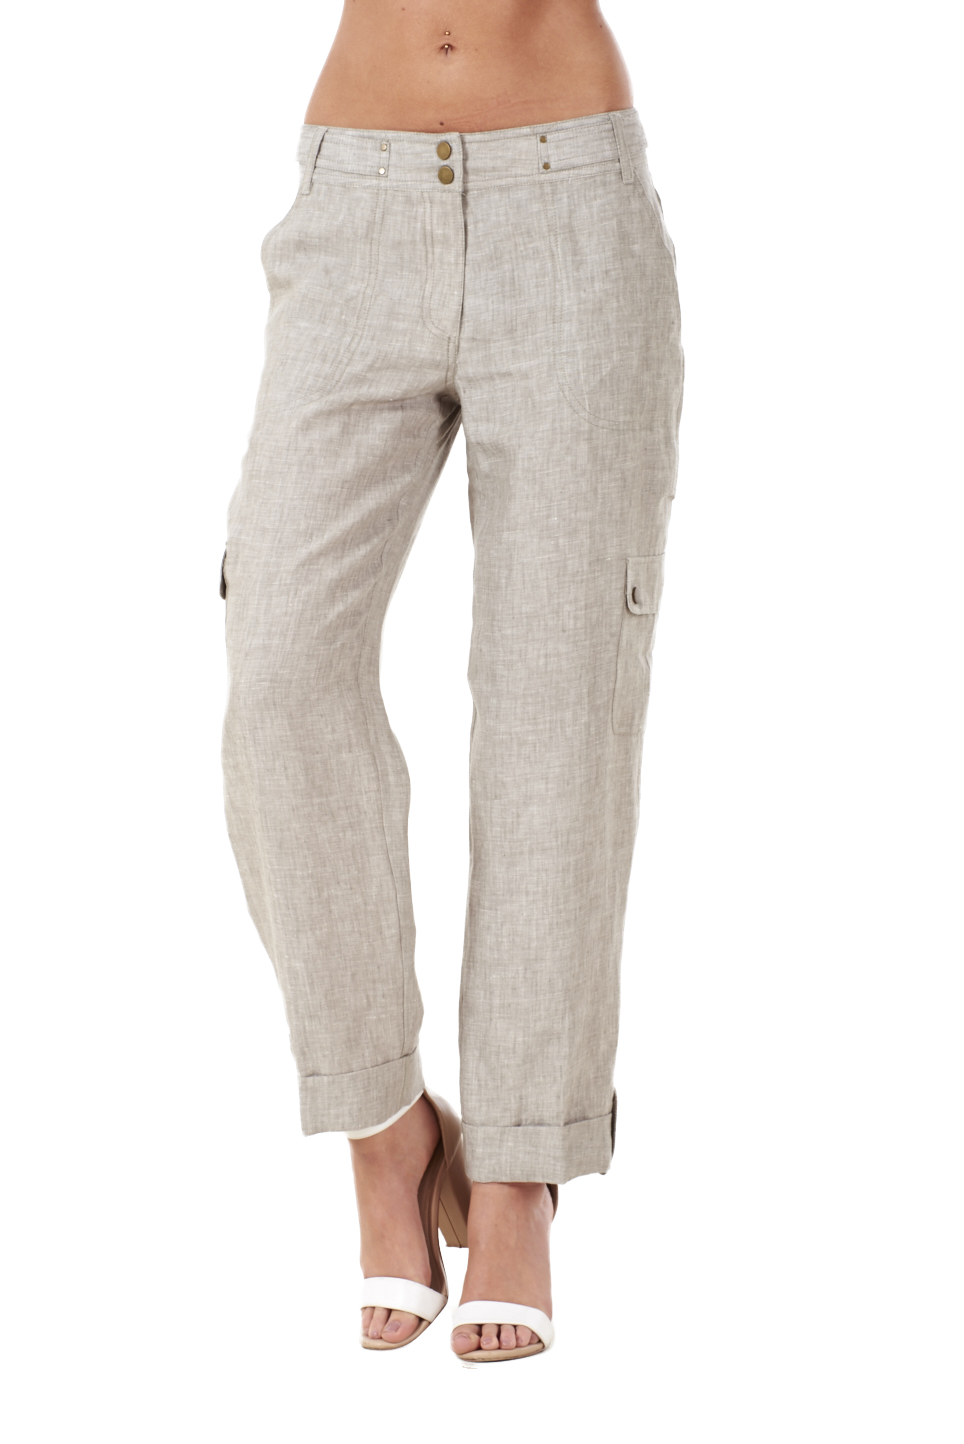 Find great deals on eBay for ladies smart linen trousers. Shop with confidence.